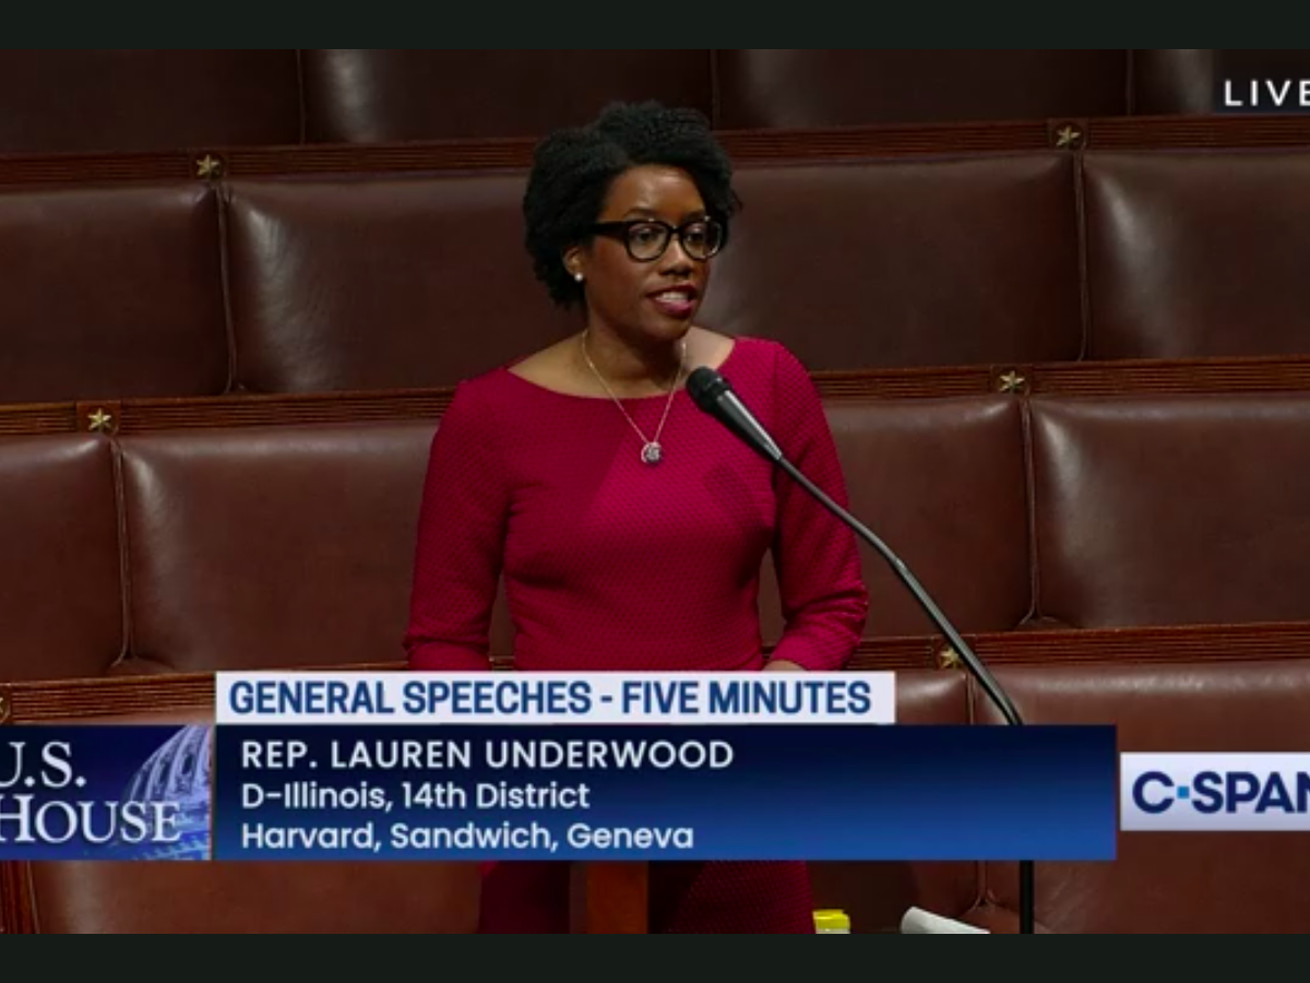 """Rep. Lauren Underwood, an Illinois Democrat, said in a House floor speech Wednesday that GOP rival Jim Oberweis """"joined the former president in making baseless allegations of fraud and conspiracy"""" in their election."""